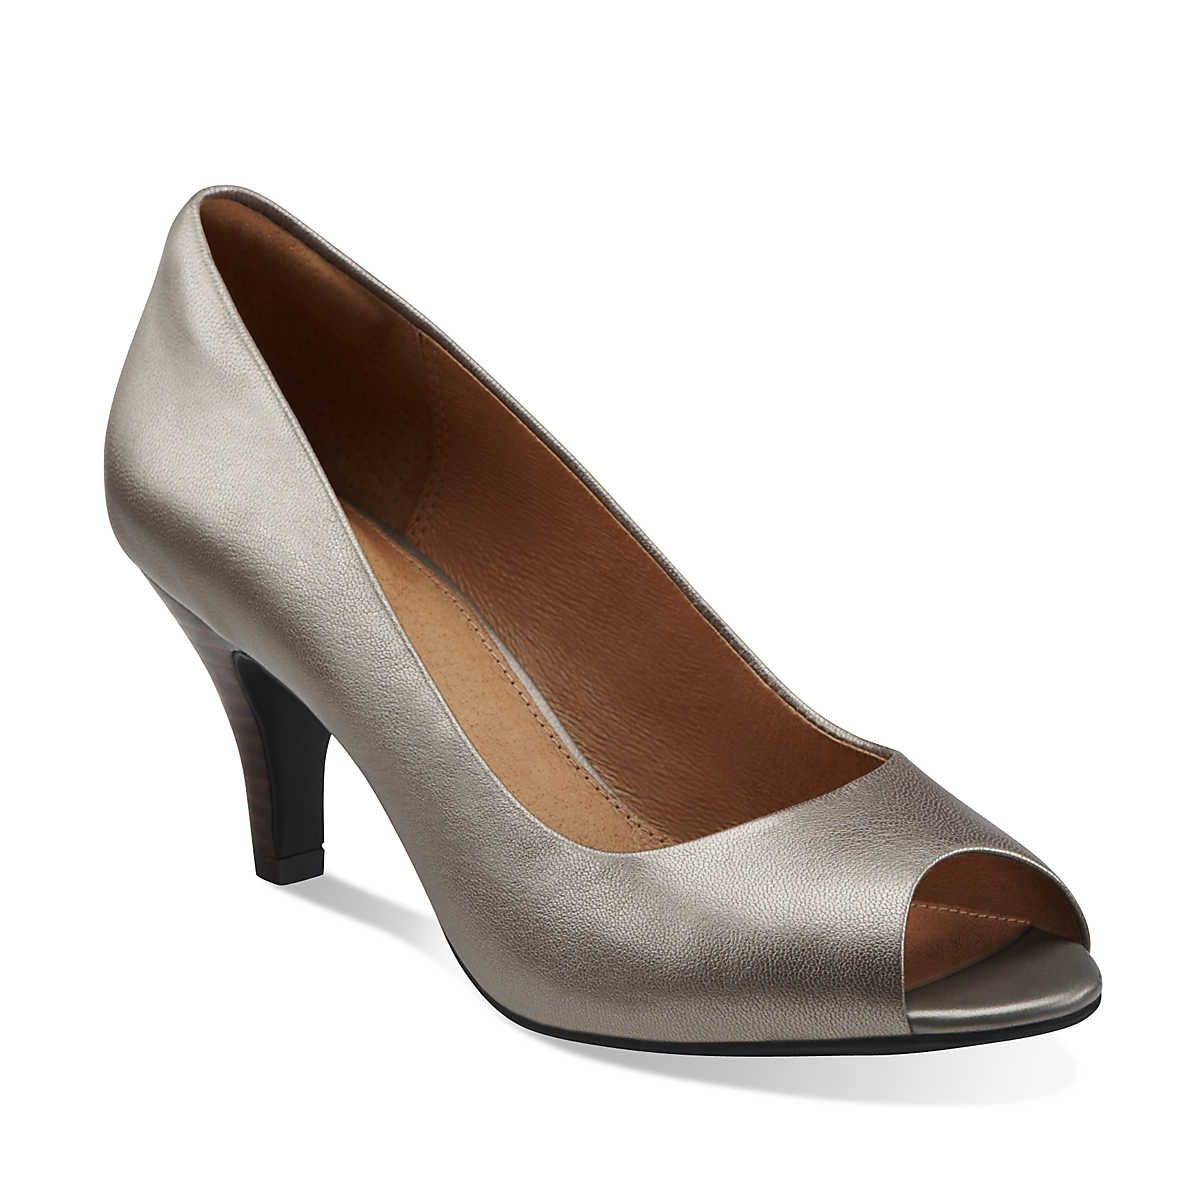 Cynthia Avant in Platinum Leather - Womens Shoes from Clarks